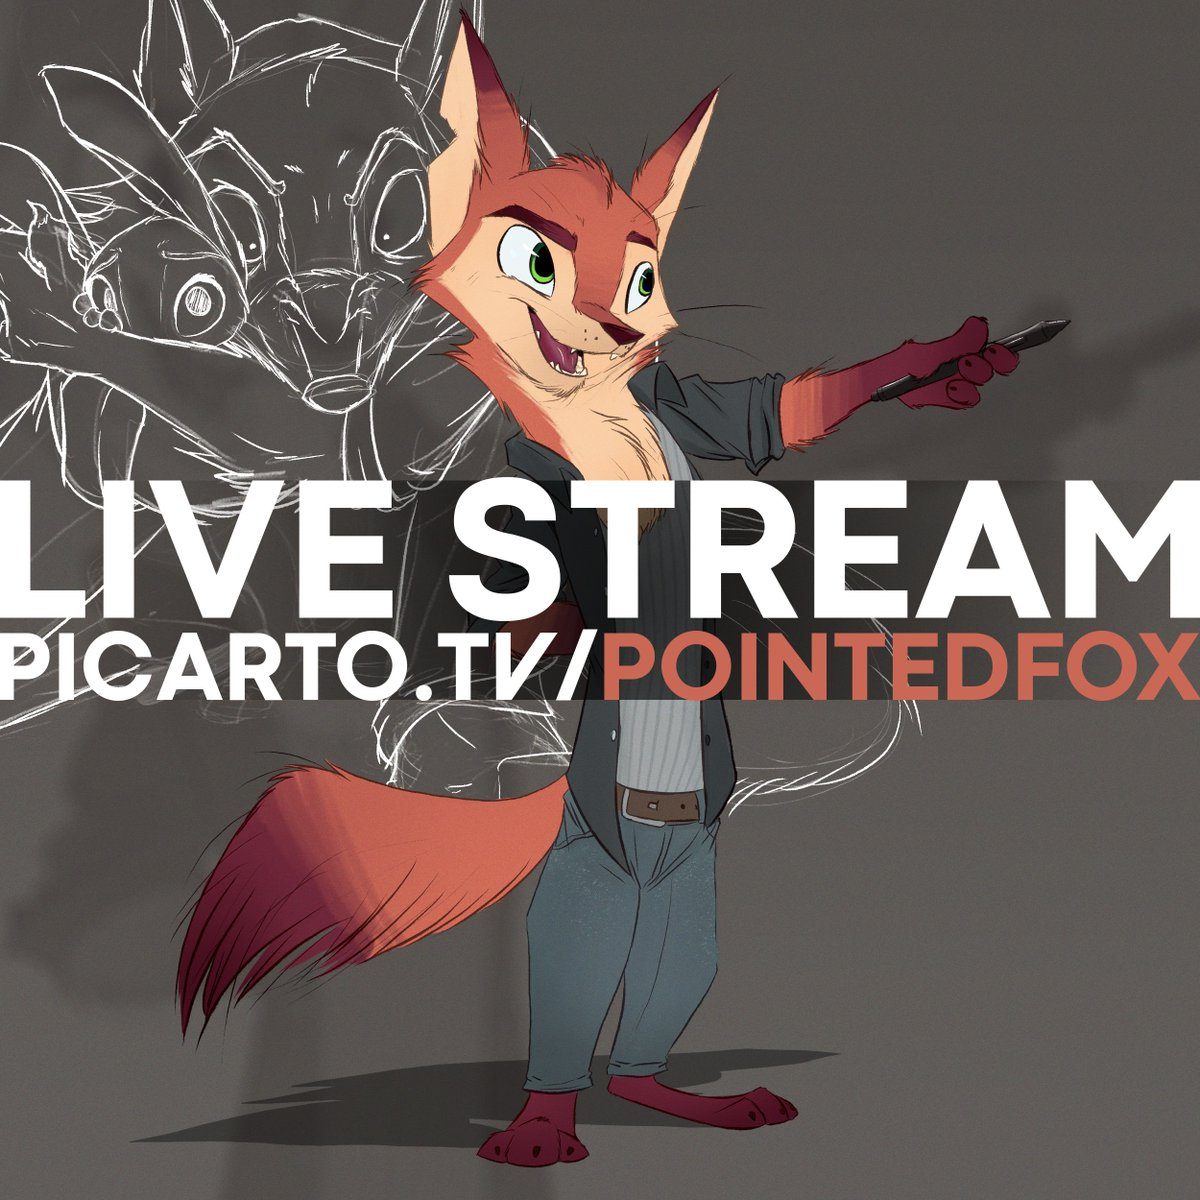 picarto.tv/pointedfox Night owling with @vulpesvant and @PureRubyDragon multi-stream on some Beastars work. 🐺🐰